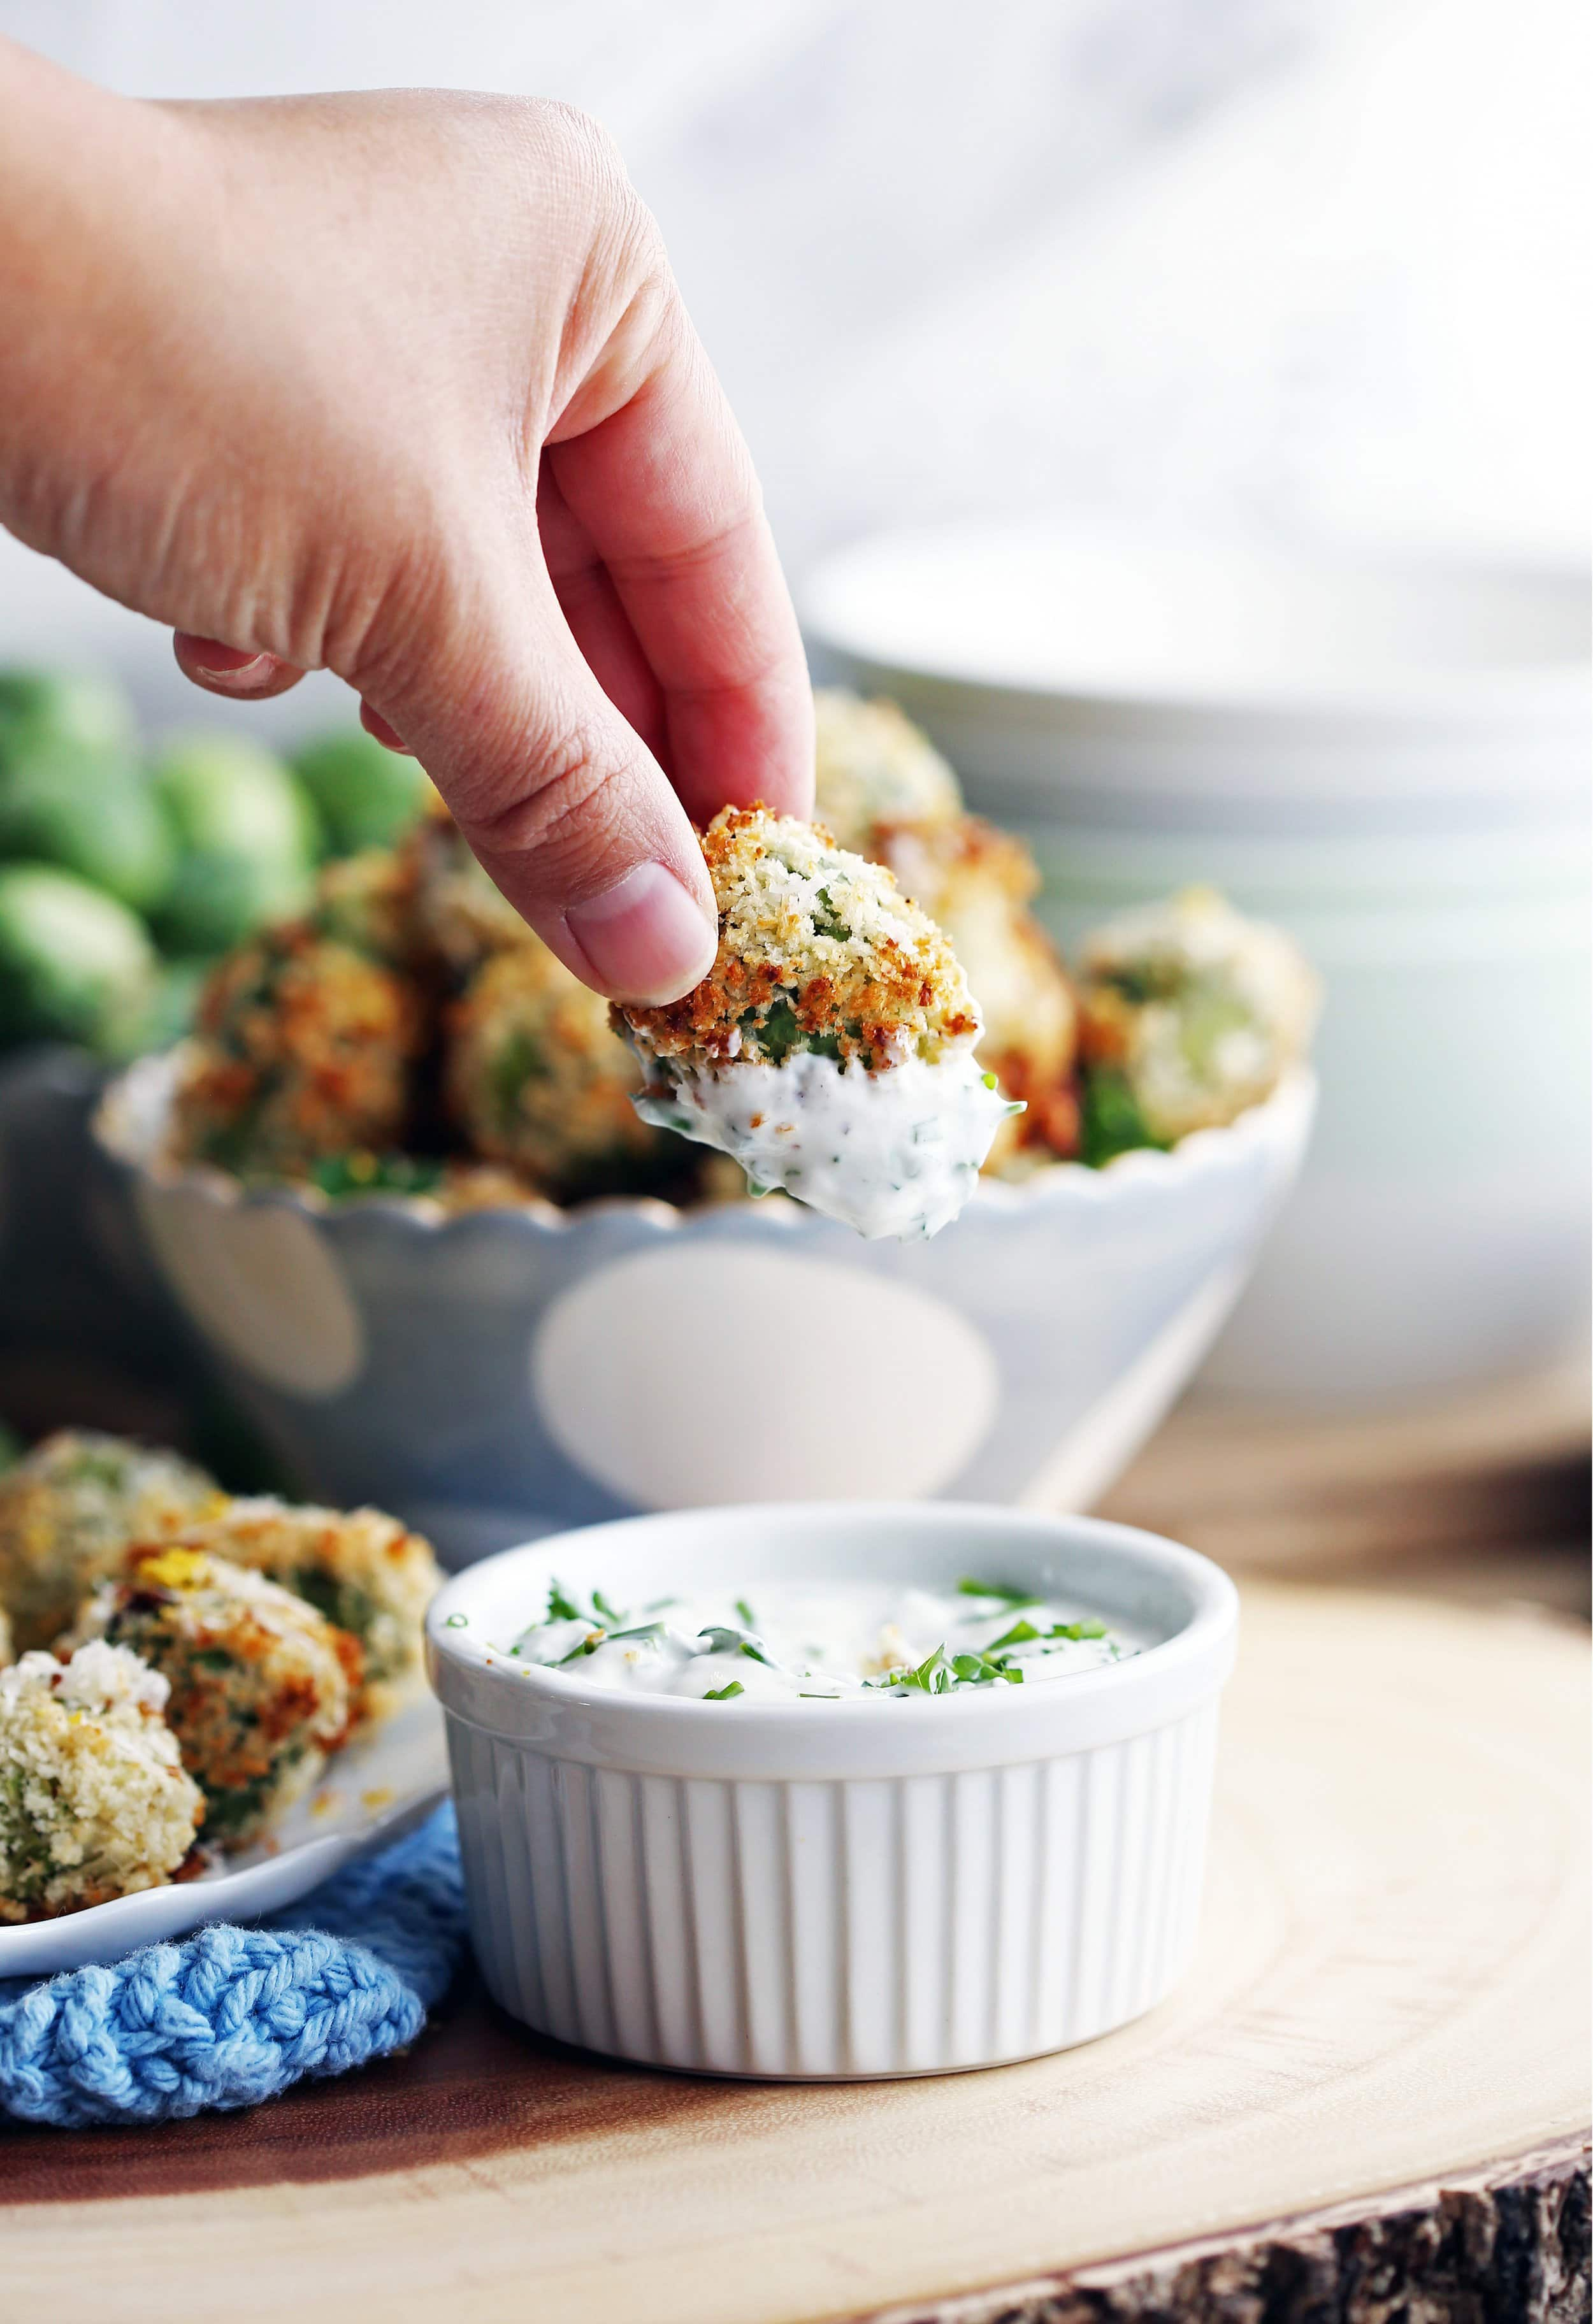 Fingers holding a single parmesan Panko Brussels sprout that has been dipped in sour cream sauce.